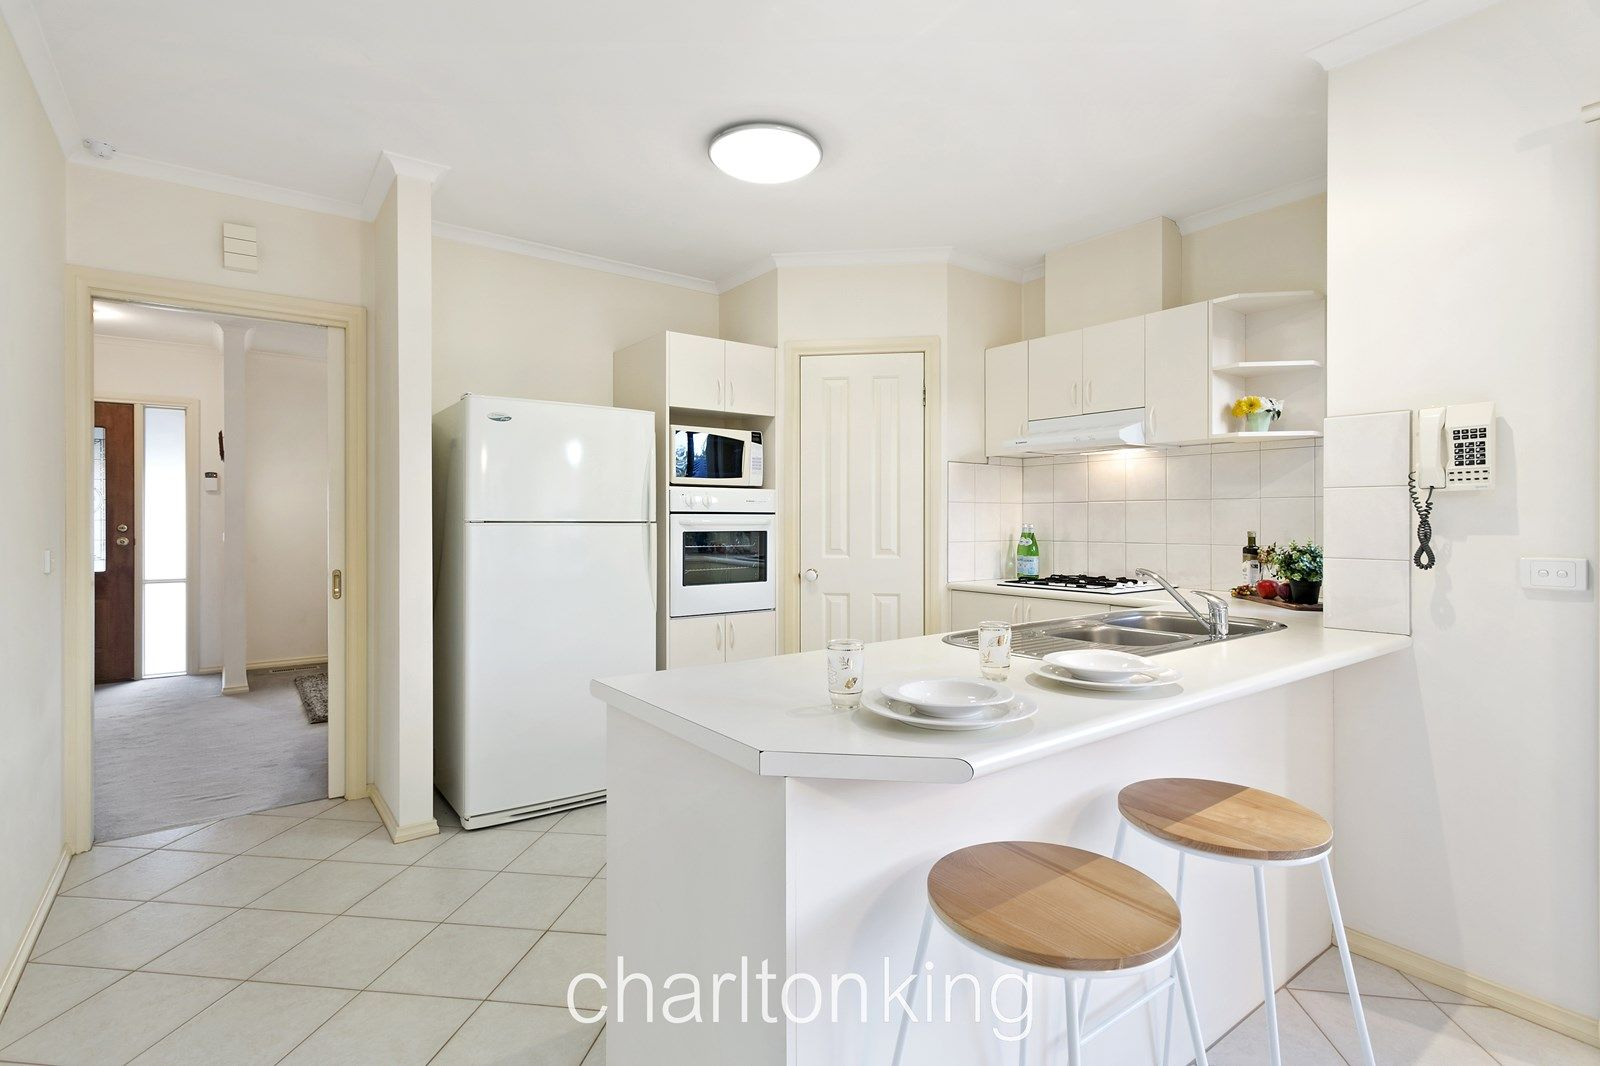 5A Farm Road, Cheltenham VIC 3192, Image 1